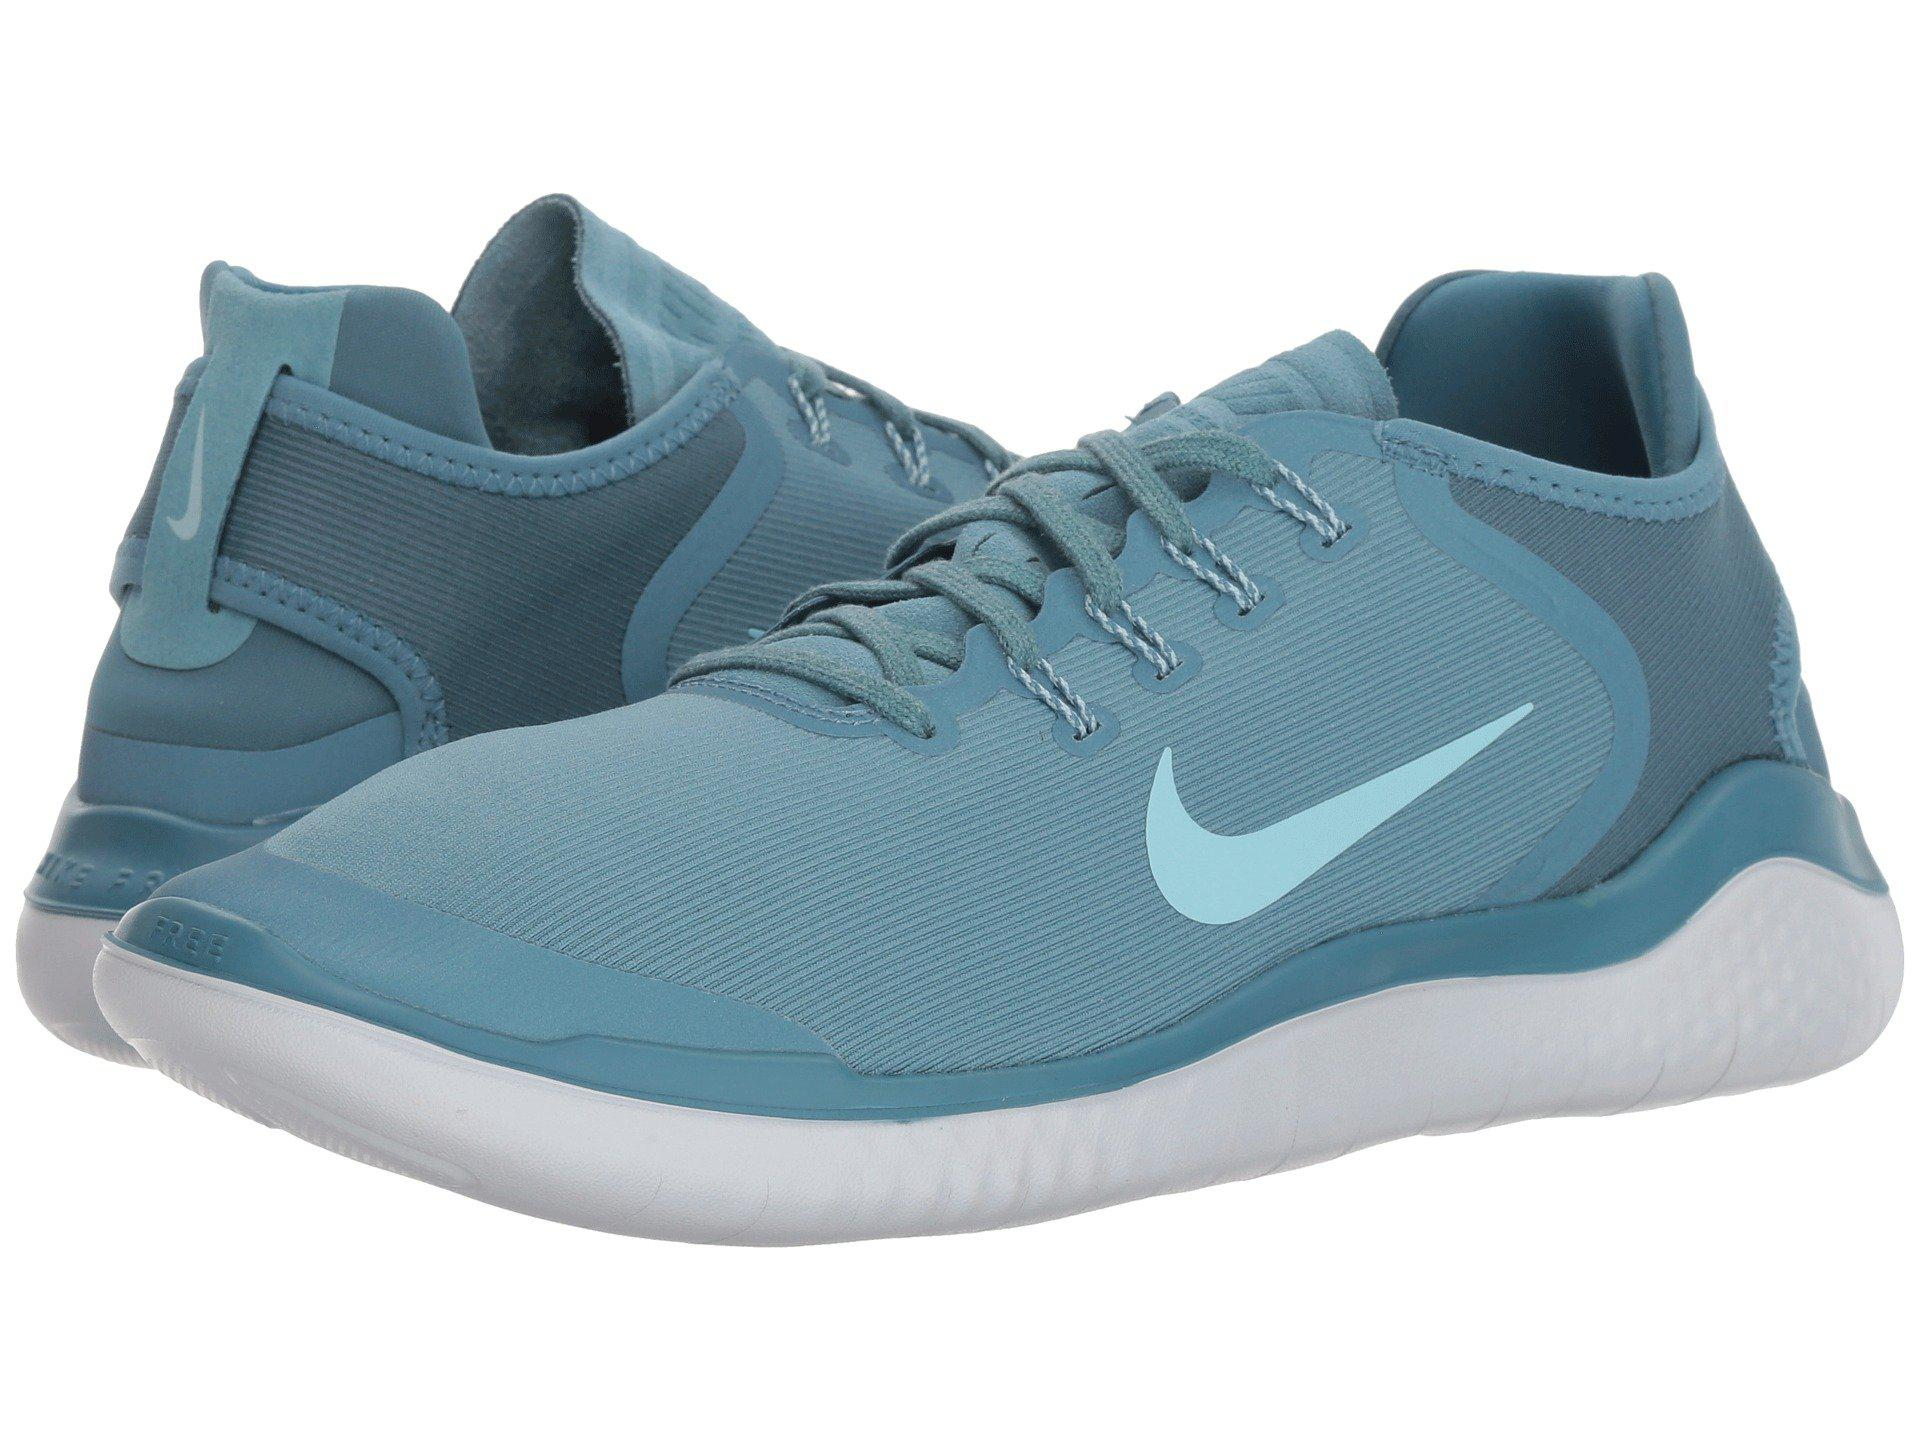 1f4795b47138 Lyst - Nike Free Rn 2018 Sun Bleached in Blue for Men - Save 17%